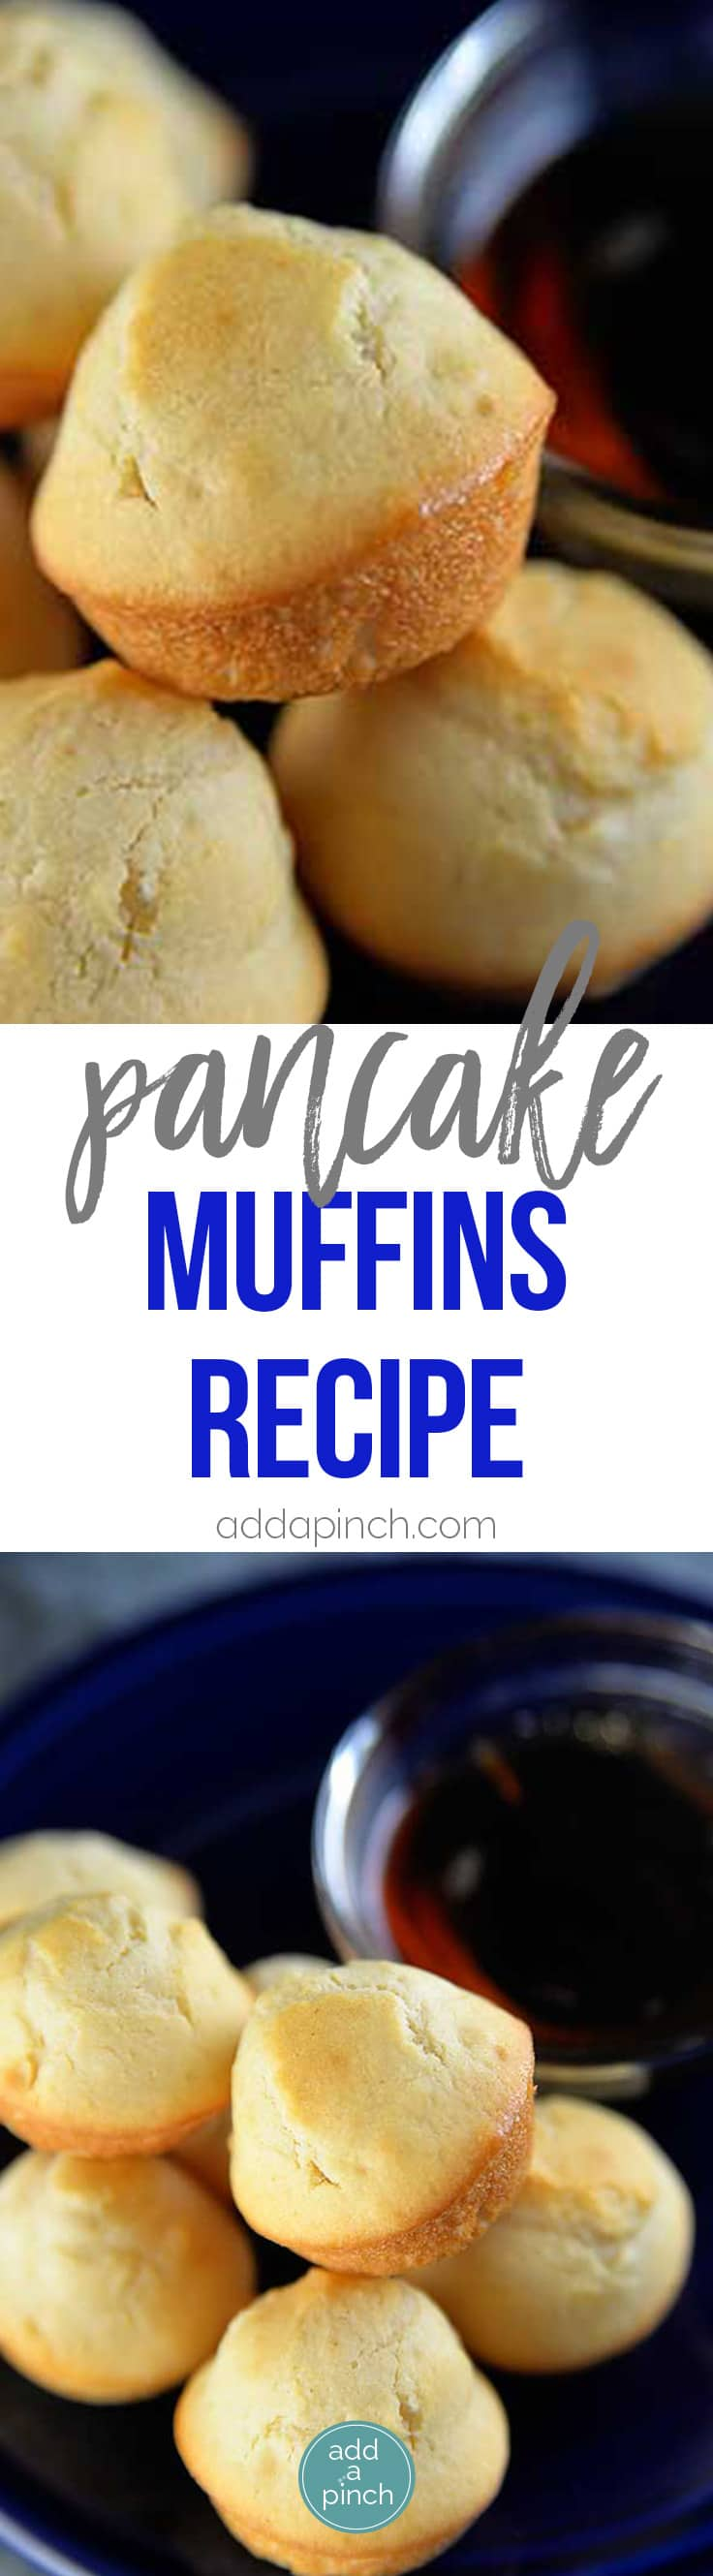 Pancake Muffins Recipe - Pancake muffins make a great breakfast or treat for brunch. So simple to make, you get the ease of a muffin with the deliciousness of pancakes! // addapinch.com